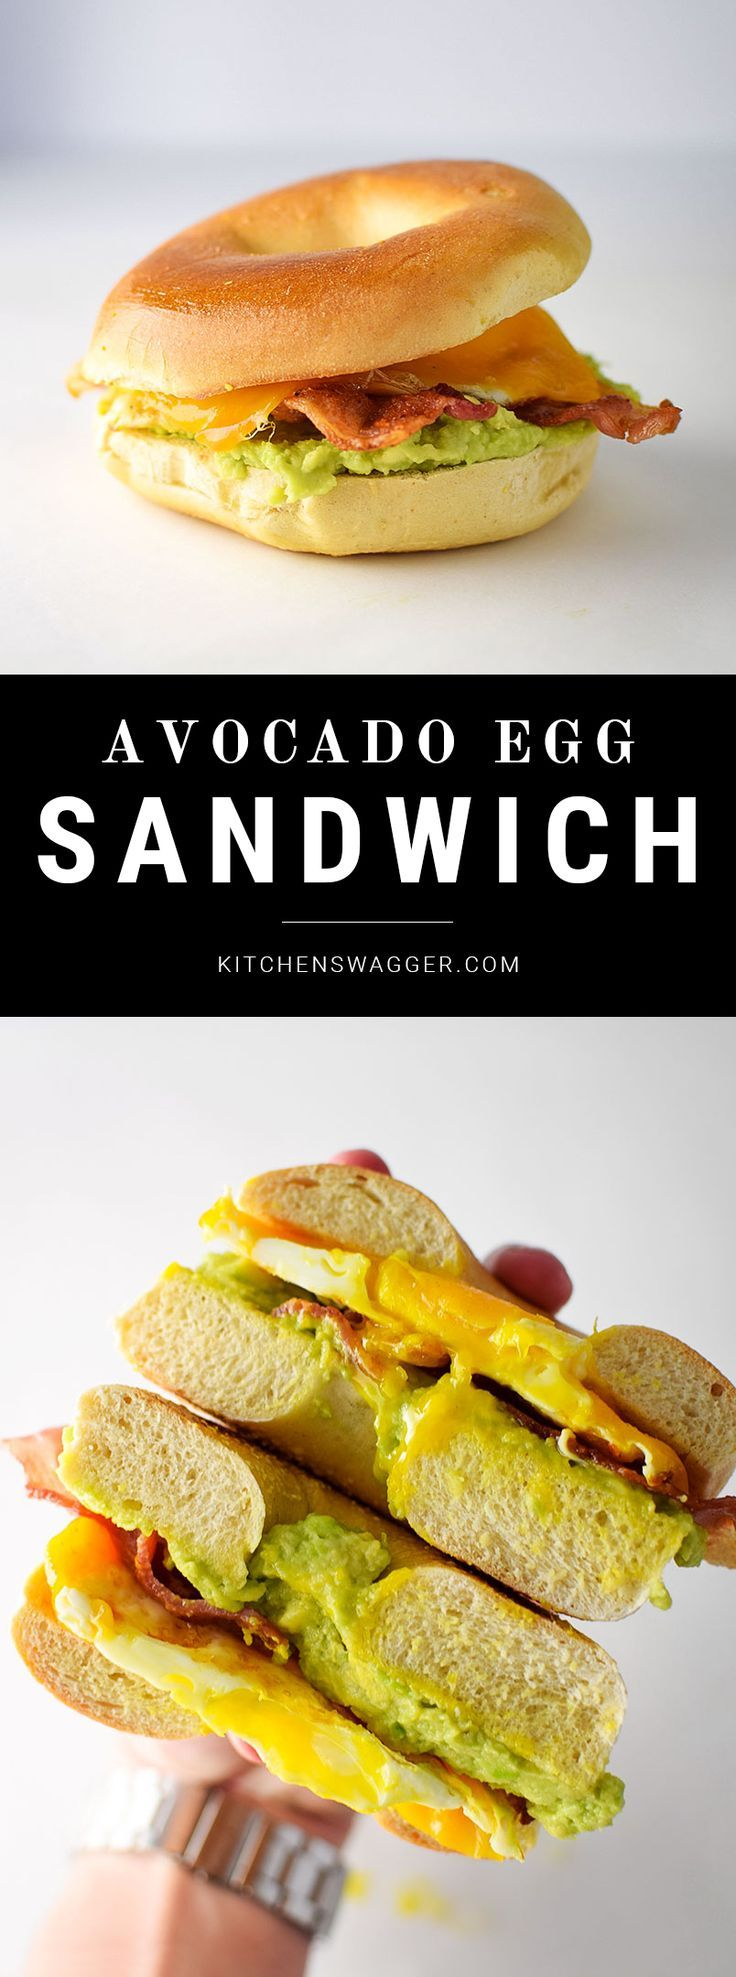 The bacon, egg and avocado breakfast sandwich combines fresh avocado, maple bacon, a  gooey fried egg, cheddar cheese, and a toasted plain bagel.